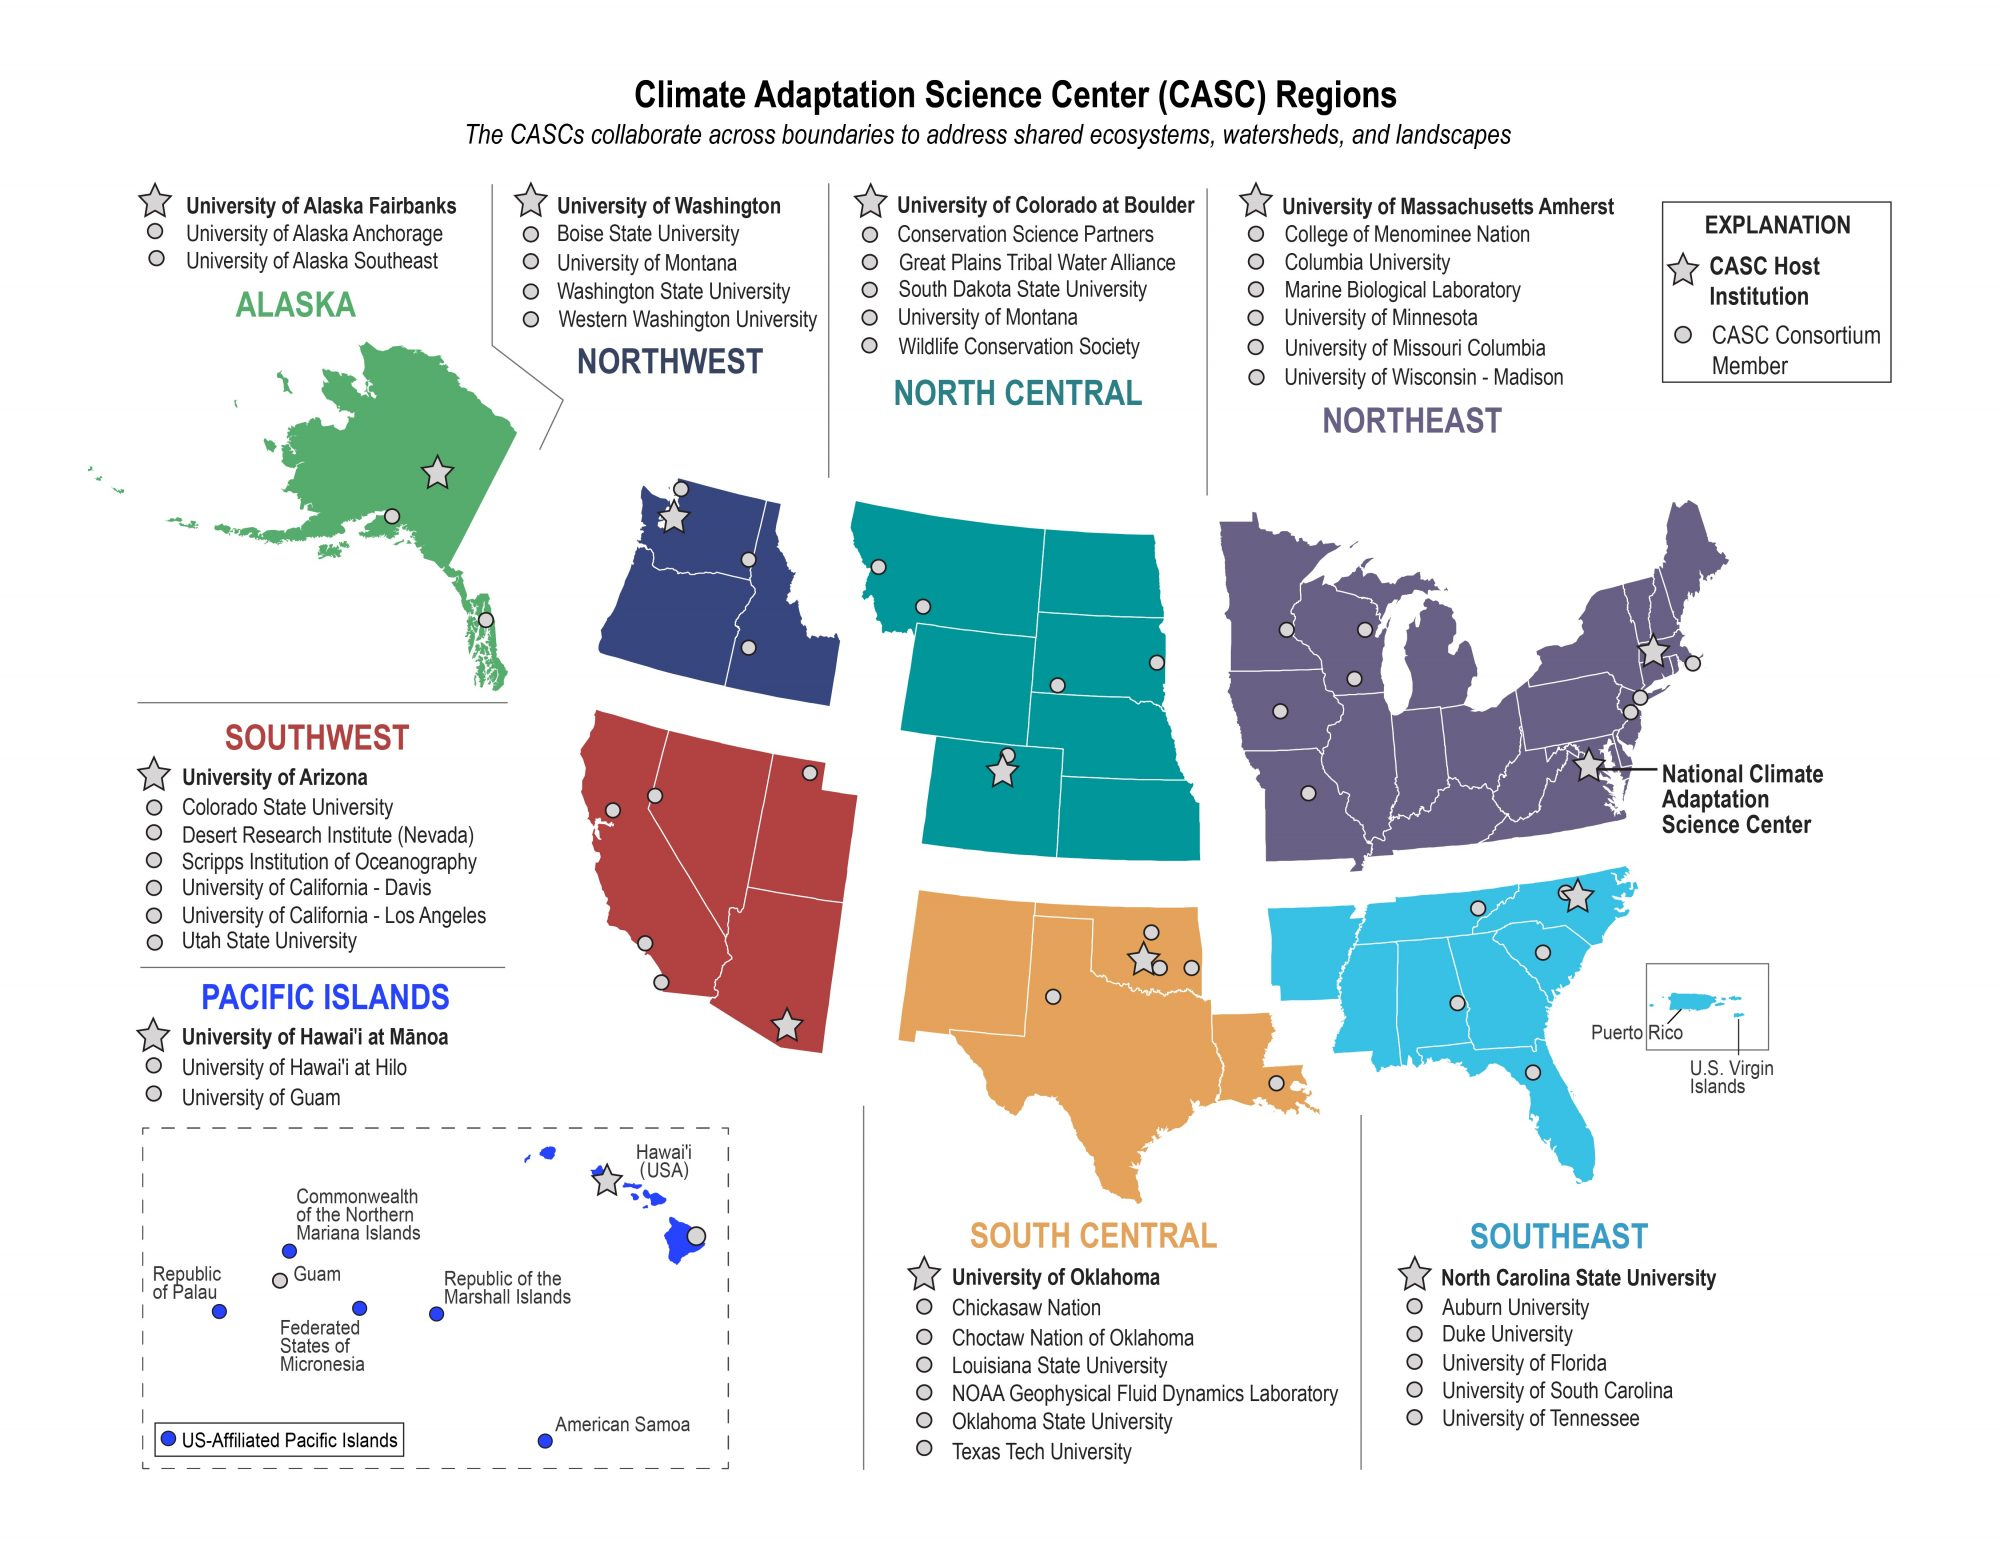 CASC network map & consortiums